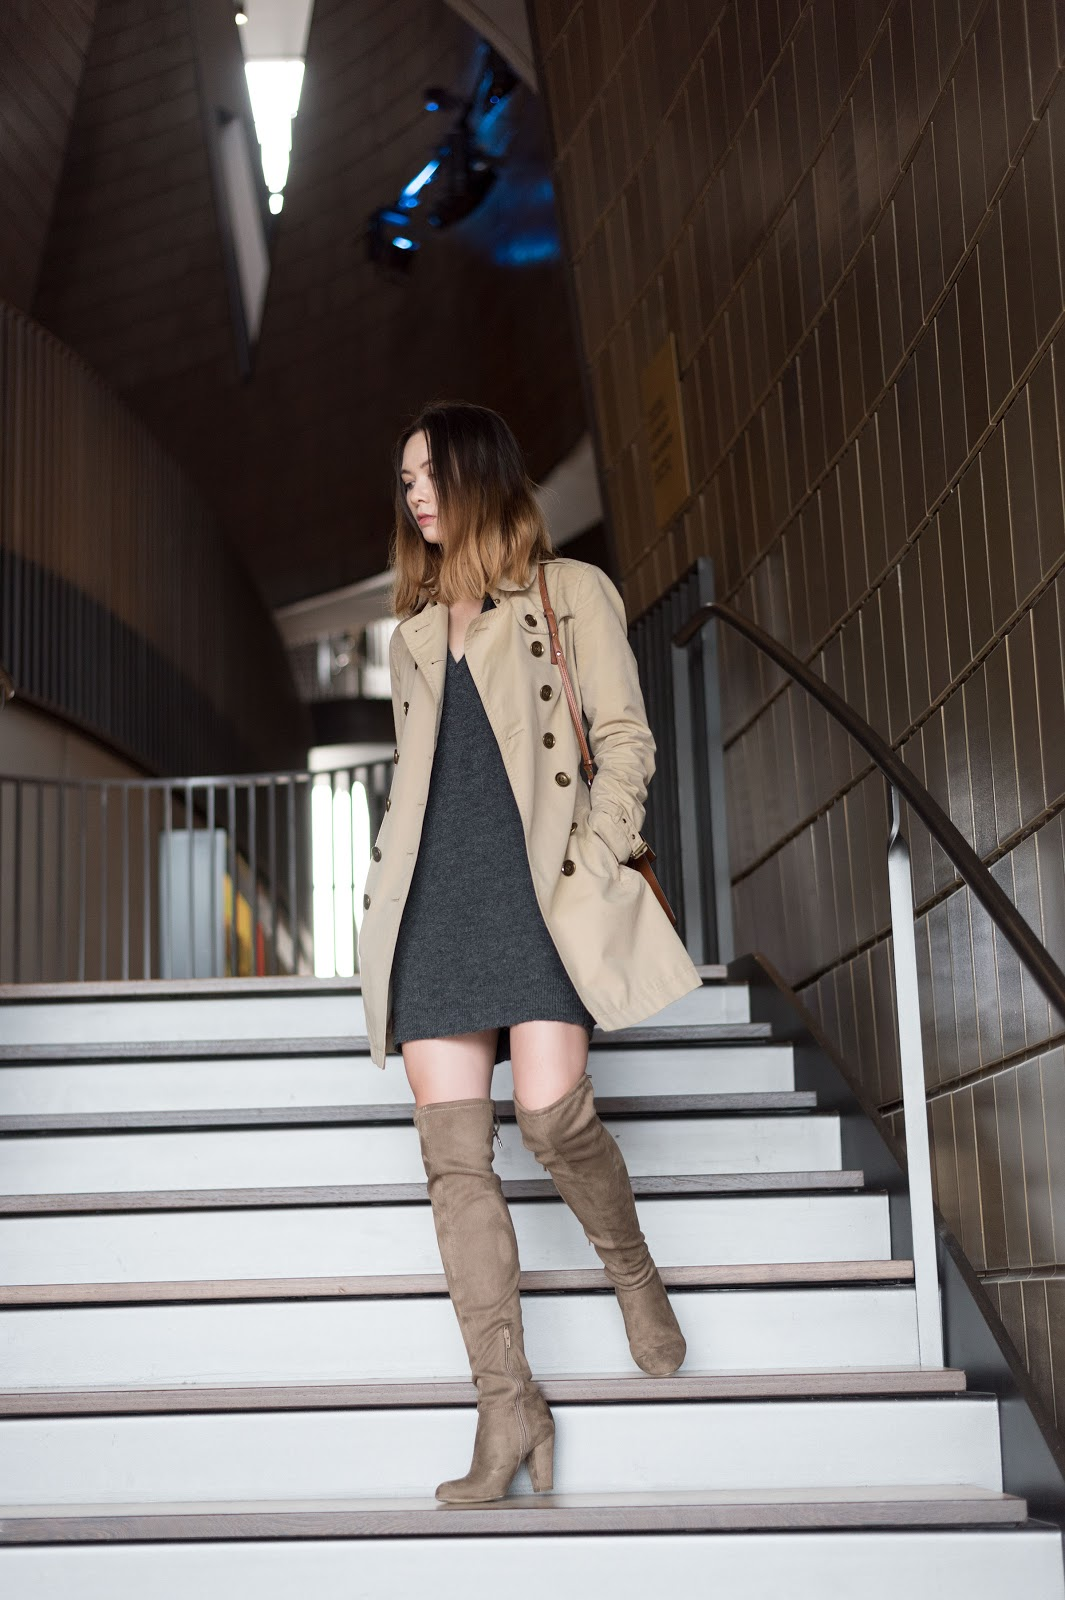 burberry trench, chloe faye, over the knee boots, studio bell, calgary